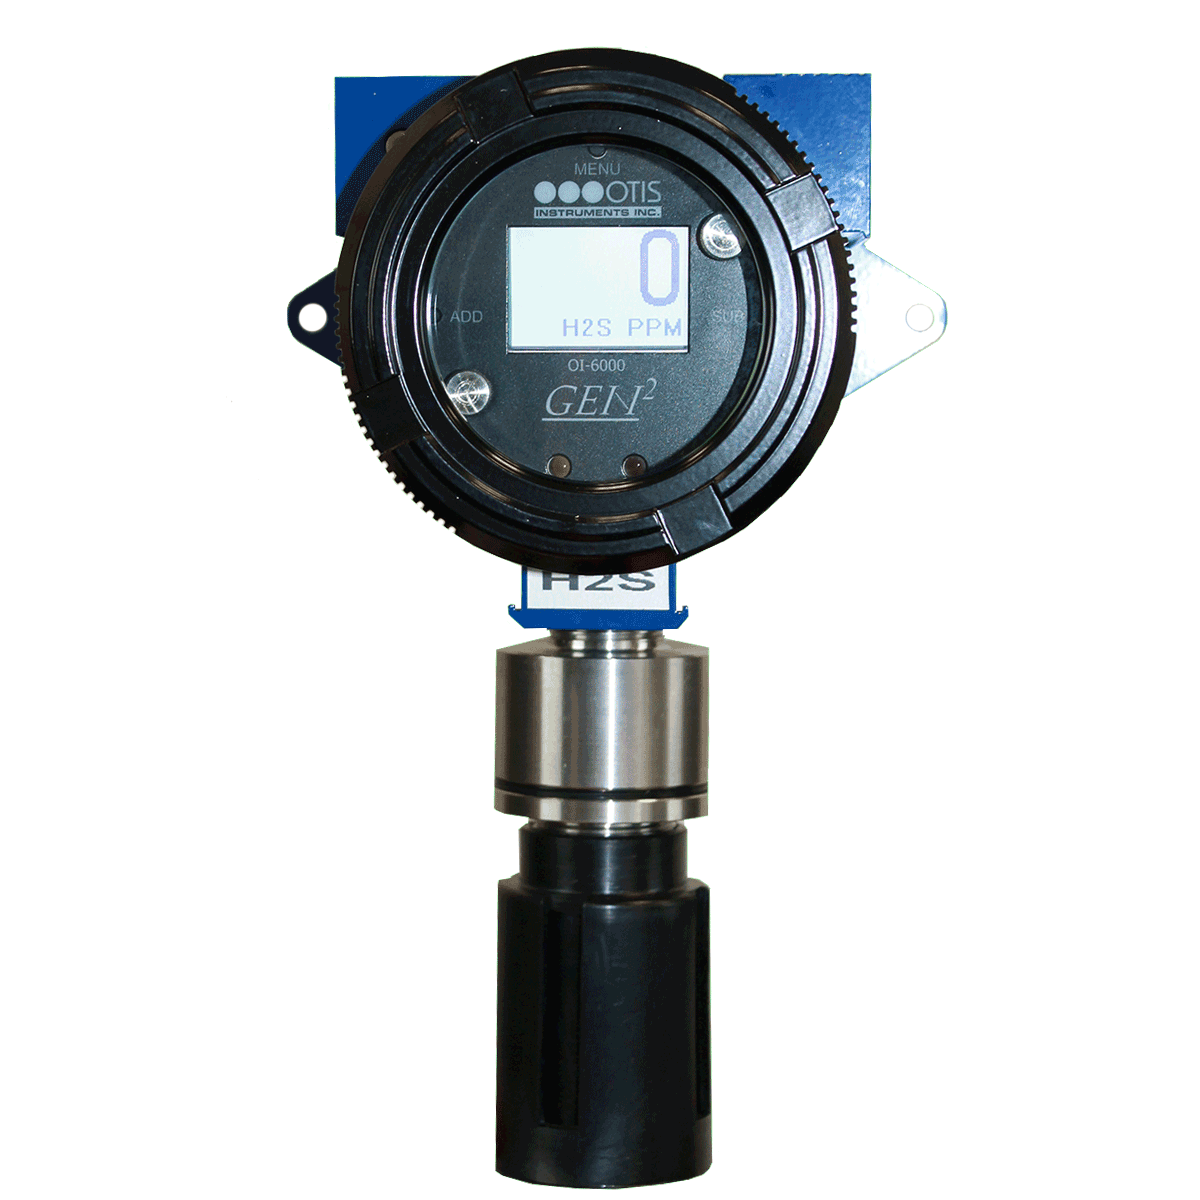 OI-6000-Sensor-Assembly---Otis-Instruments